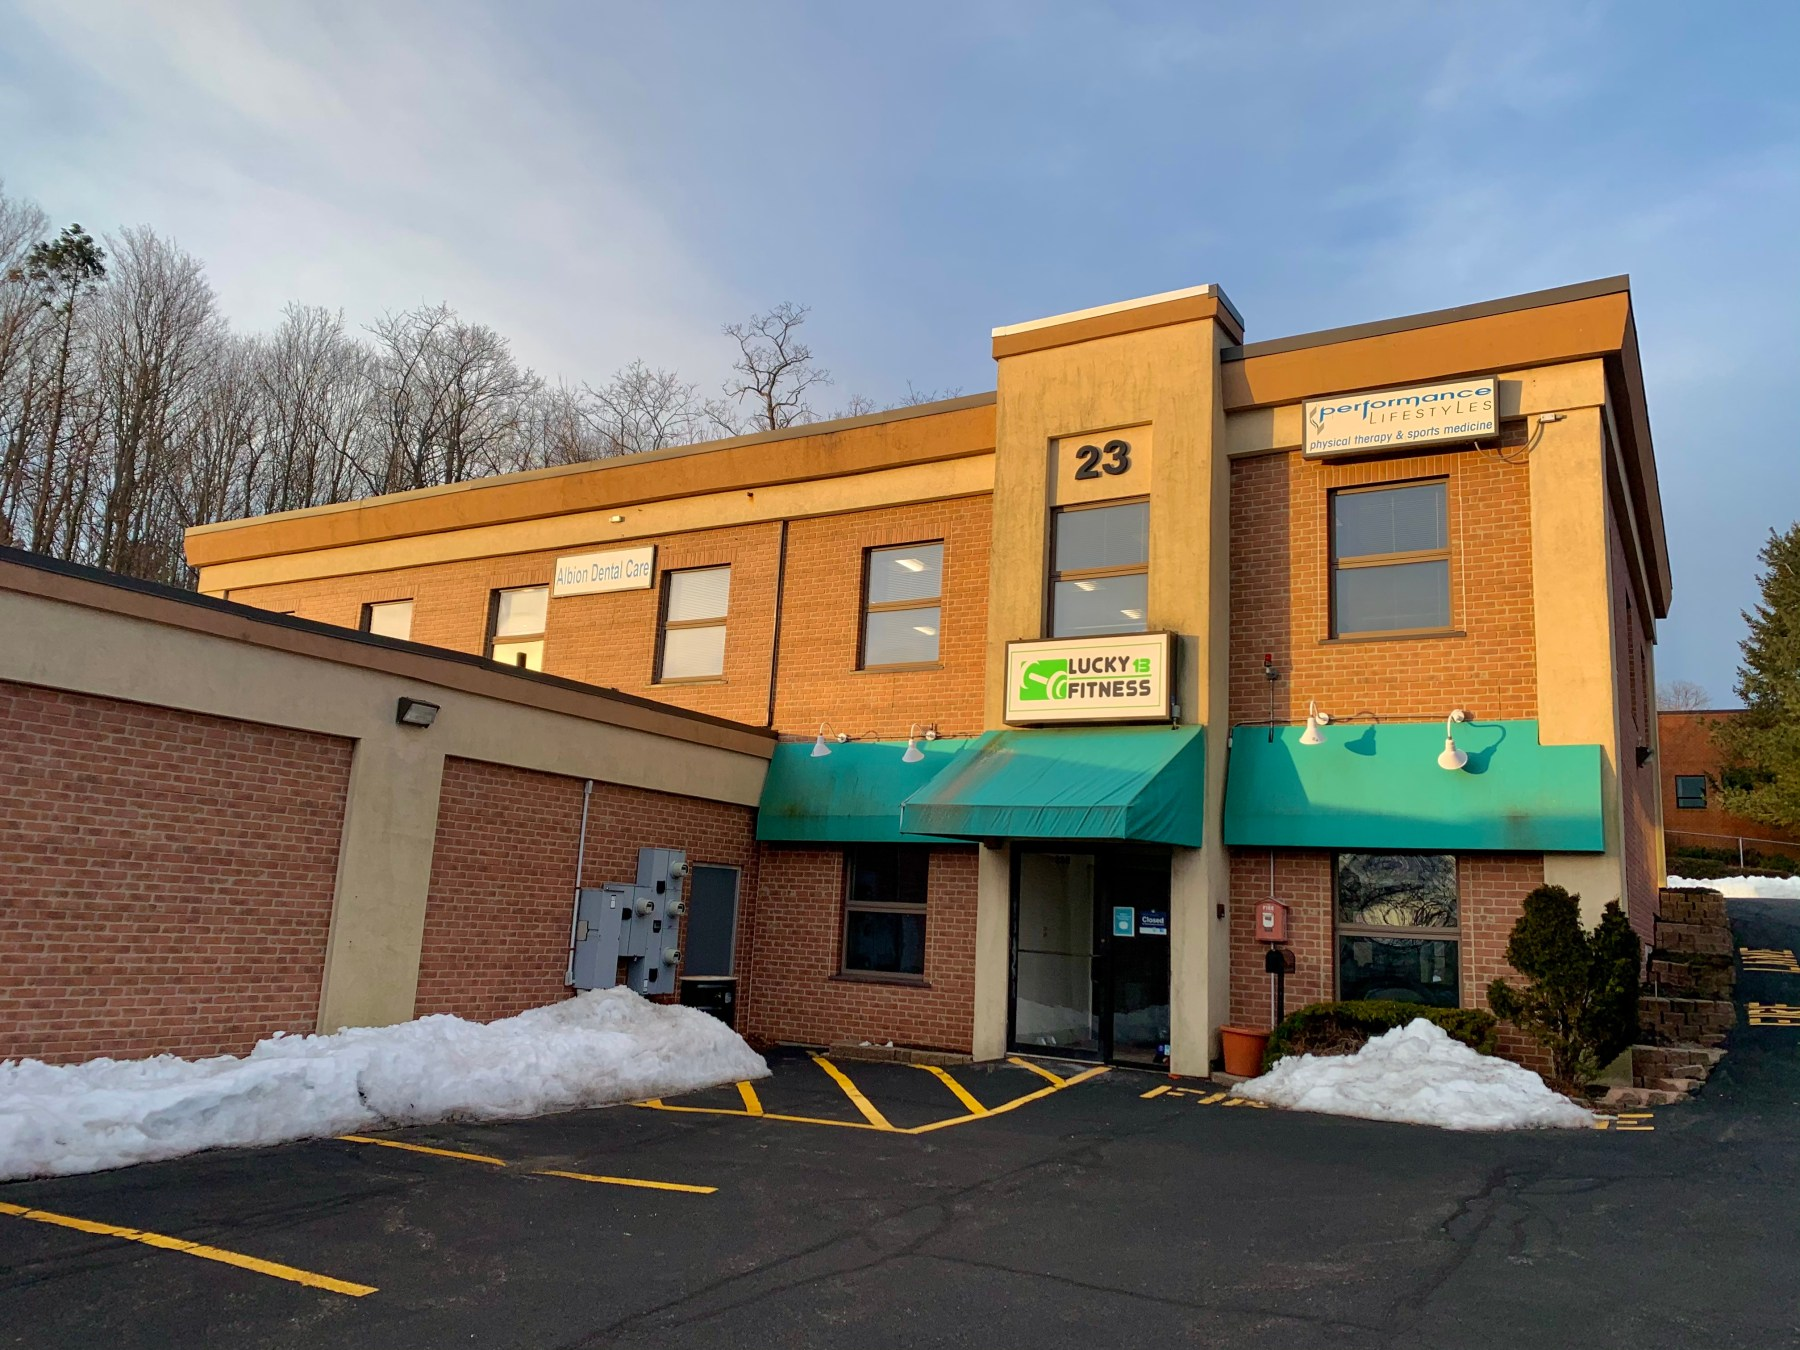 23 Cambridge Street, Burlington MA. Lucky Fitness, Performance Lifestyles and Albion Dental Care